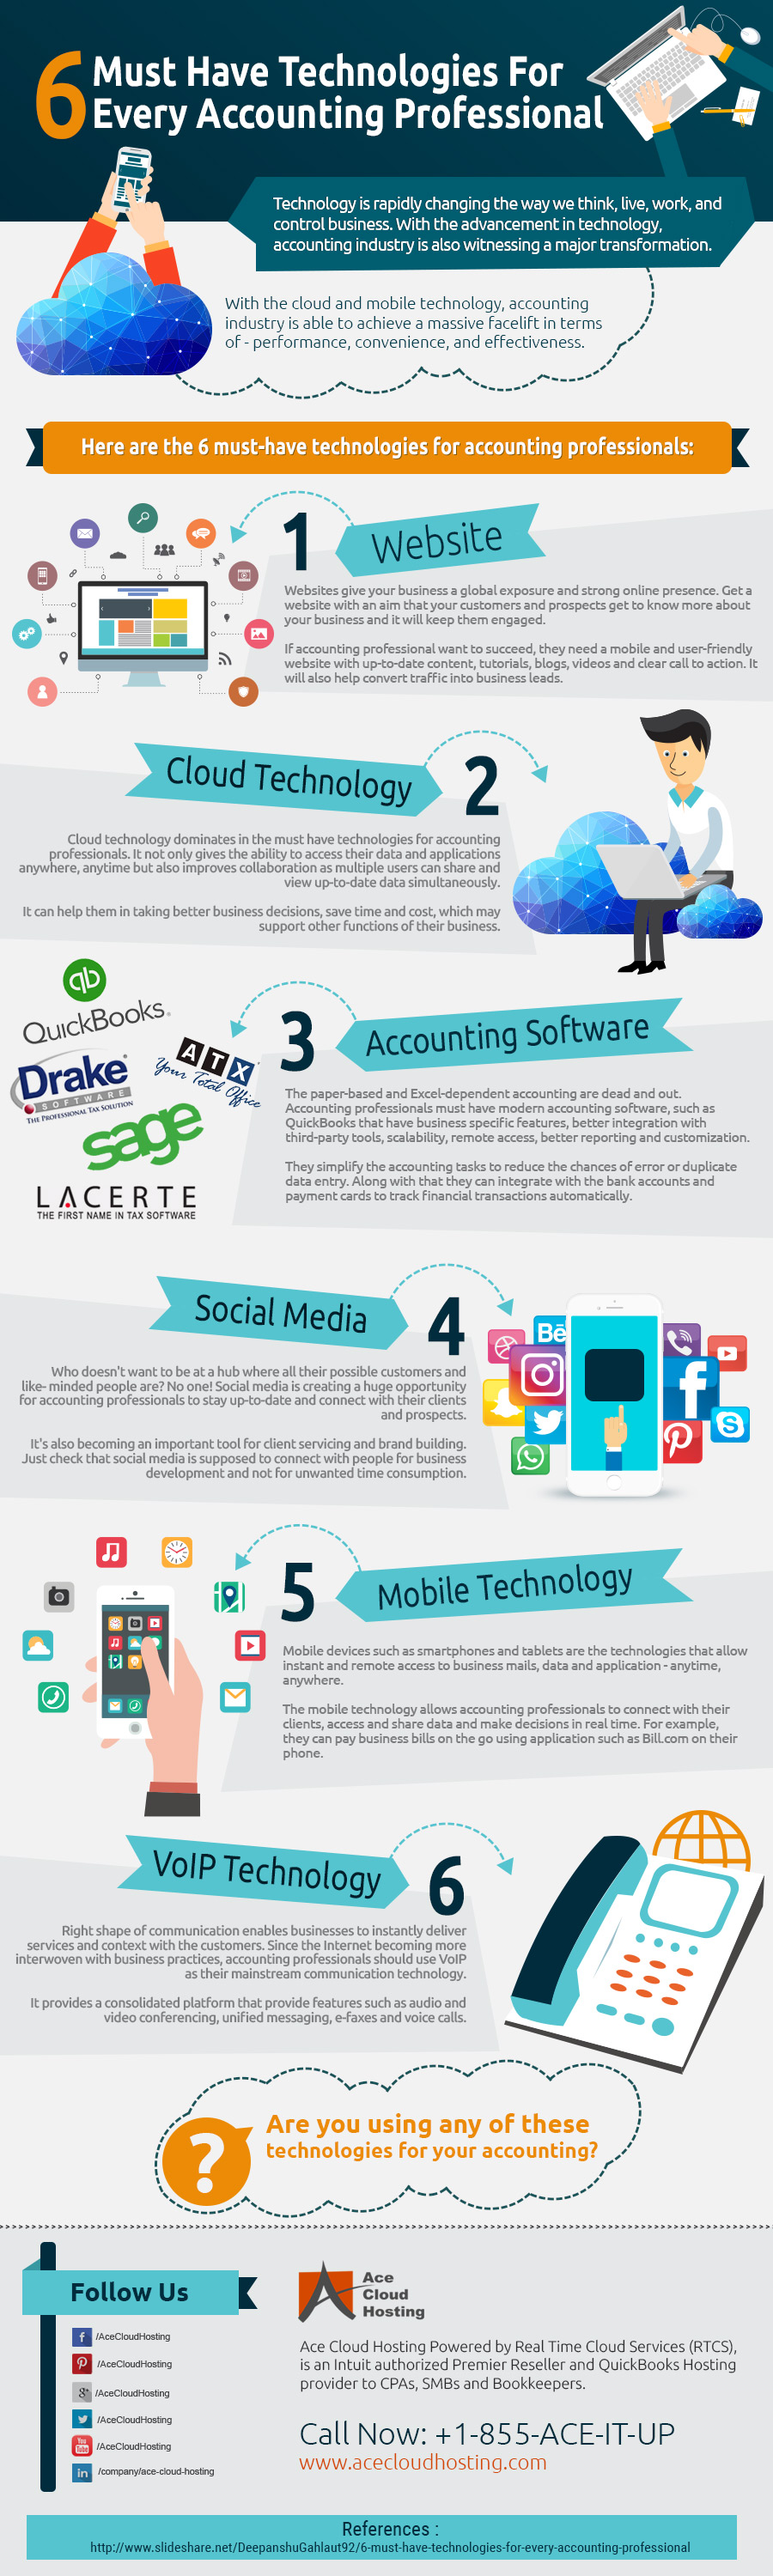 Infographic Must-Have Technologies For Today's Accounting Professional